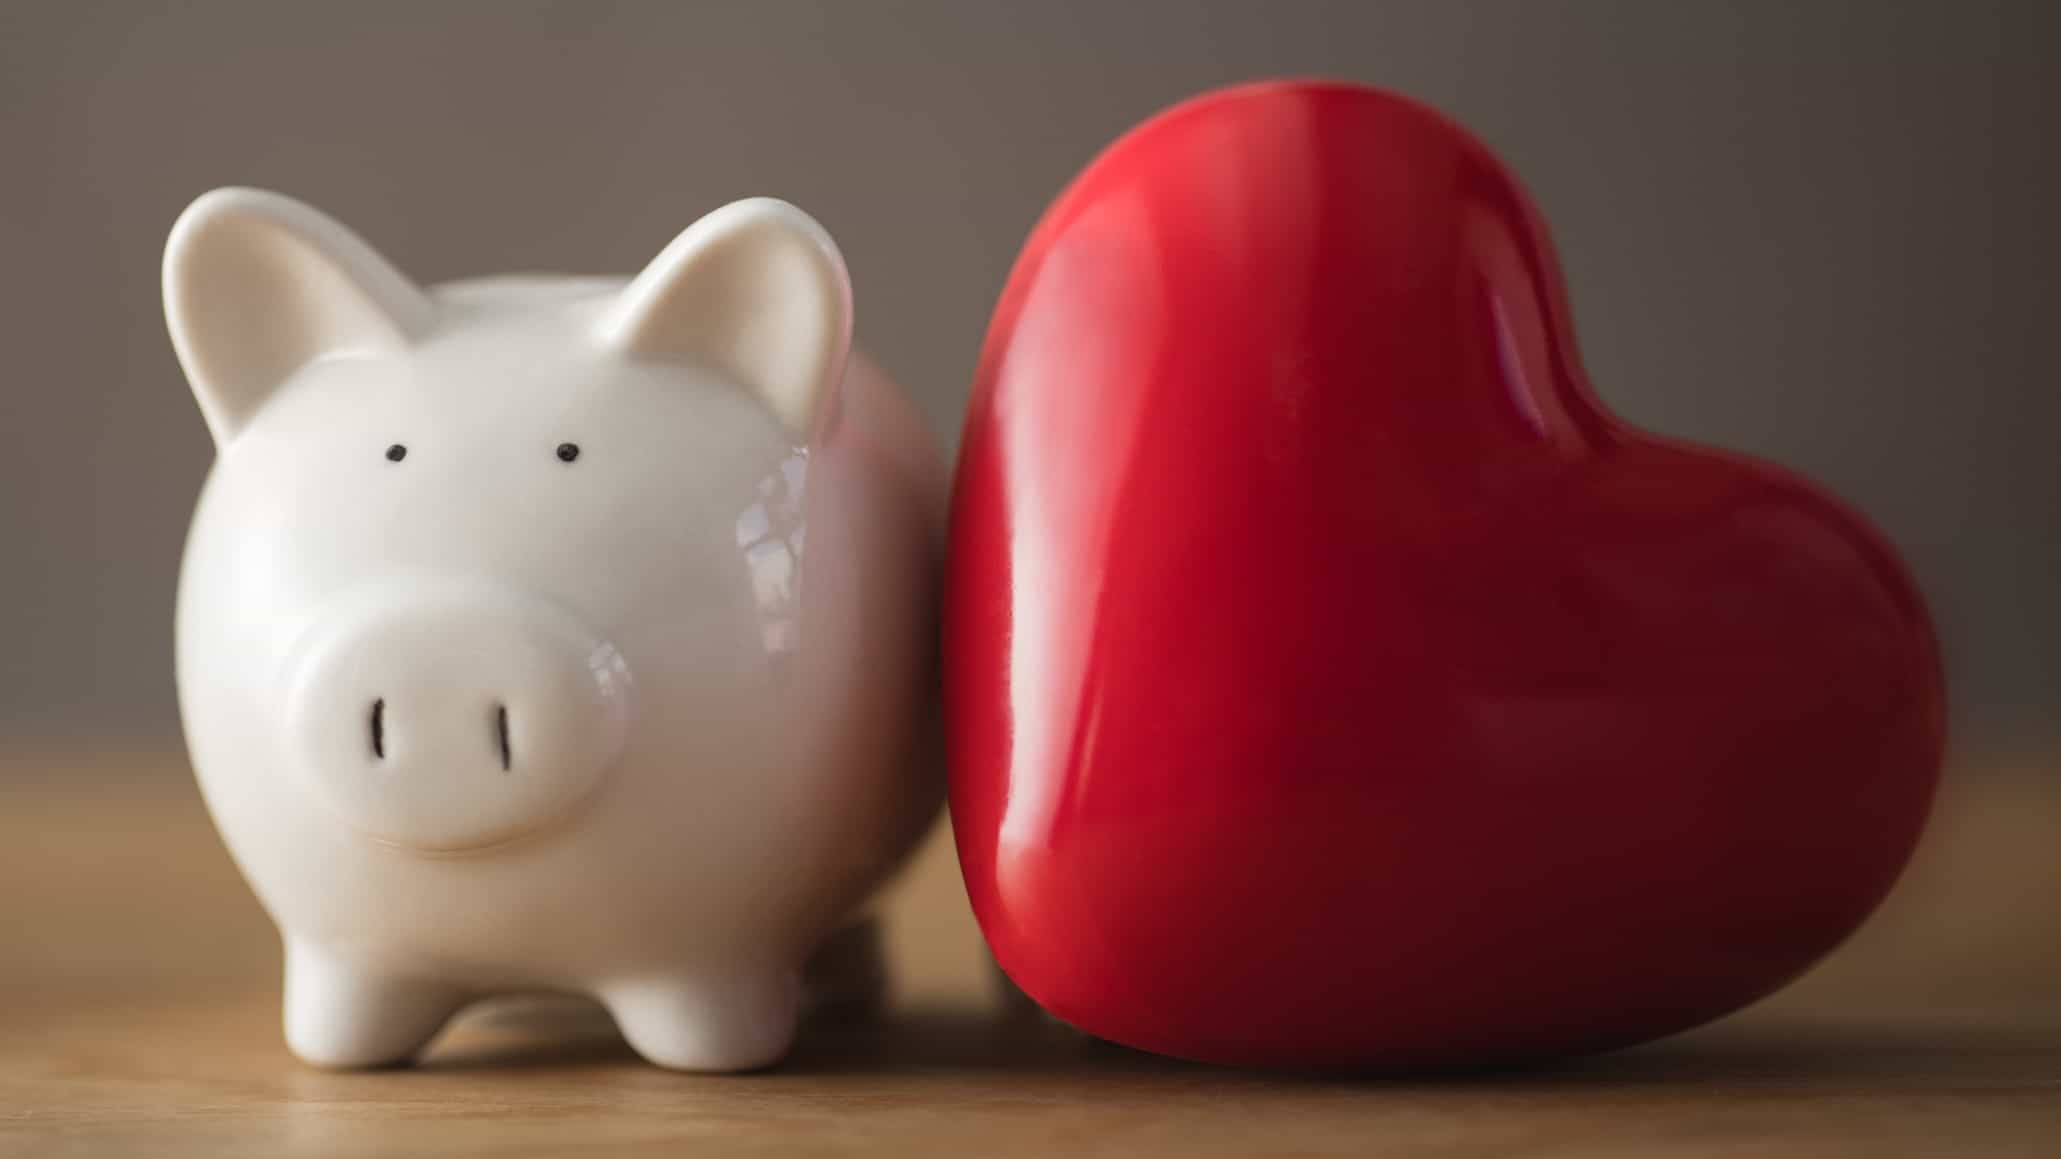 piggy bank next to big red heart representing osprey share price